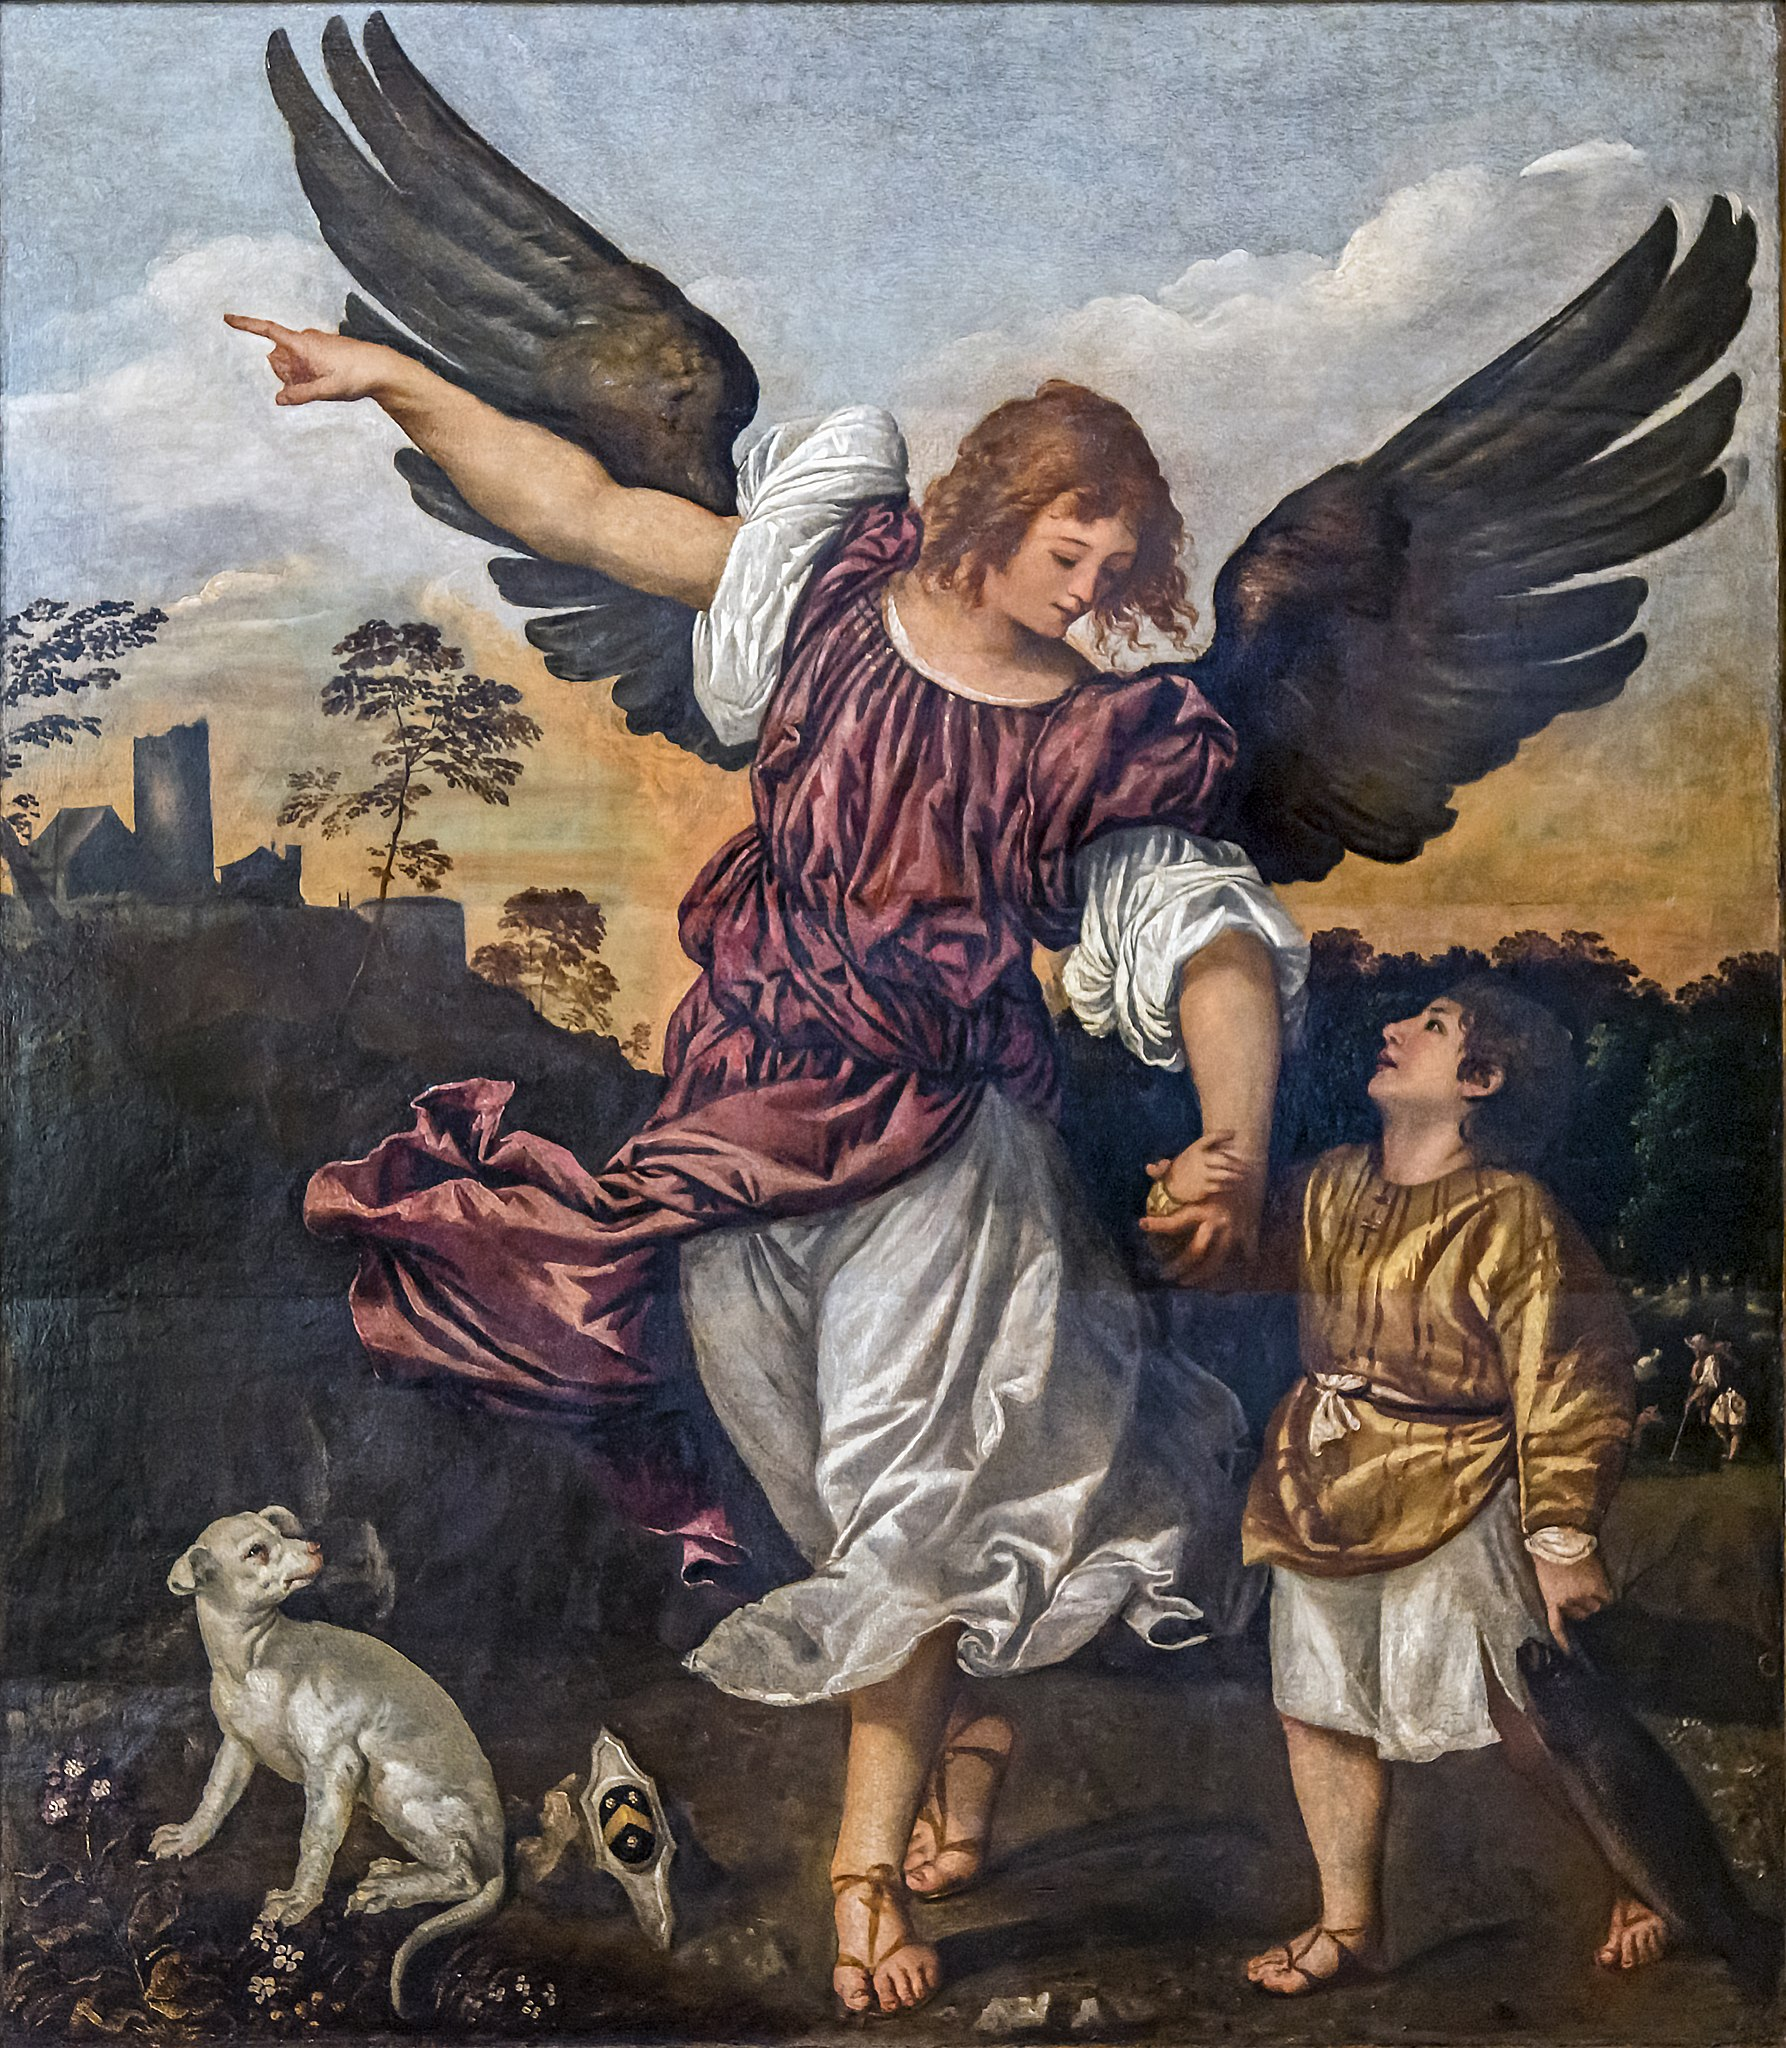 File:Accademia - Archangel Raphael and Tobit by Titian.jpg - Wikimedia Commons